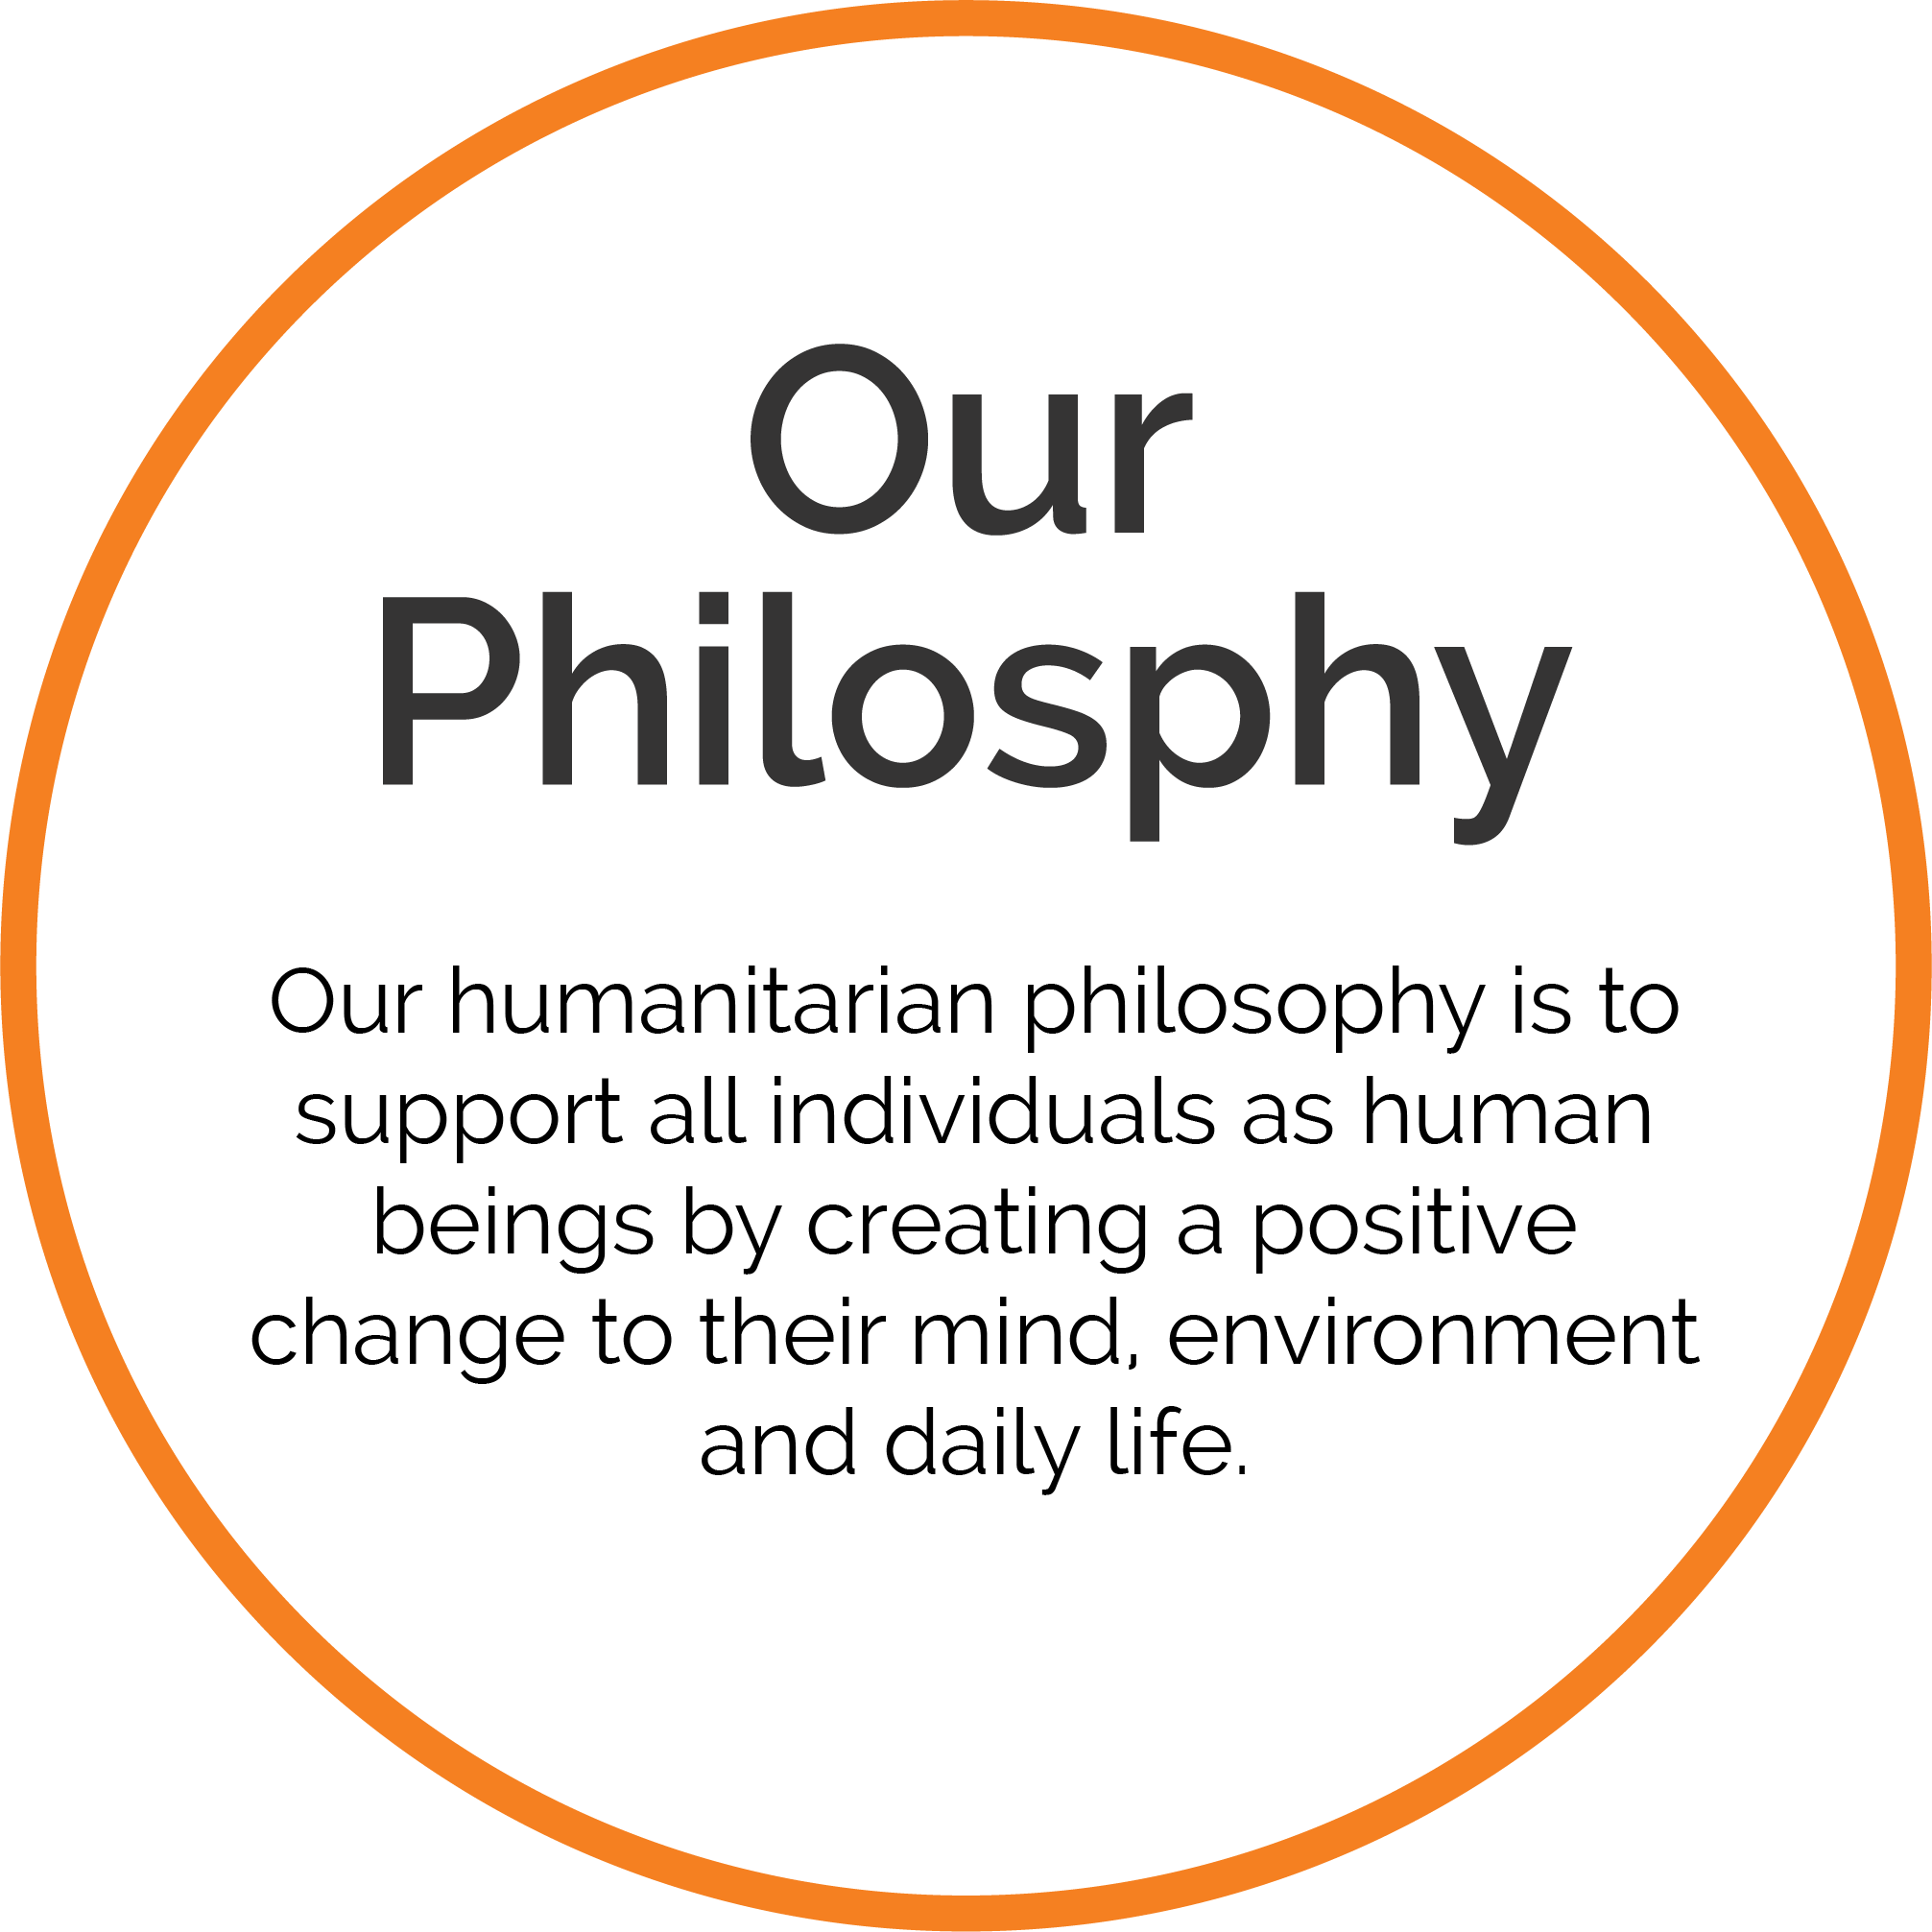 ourPhilosophy.png